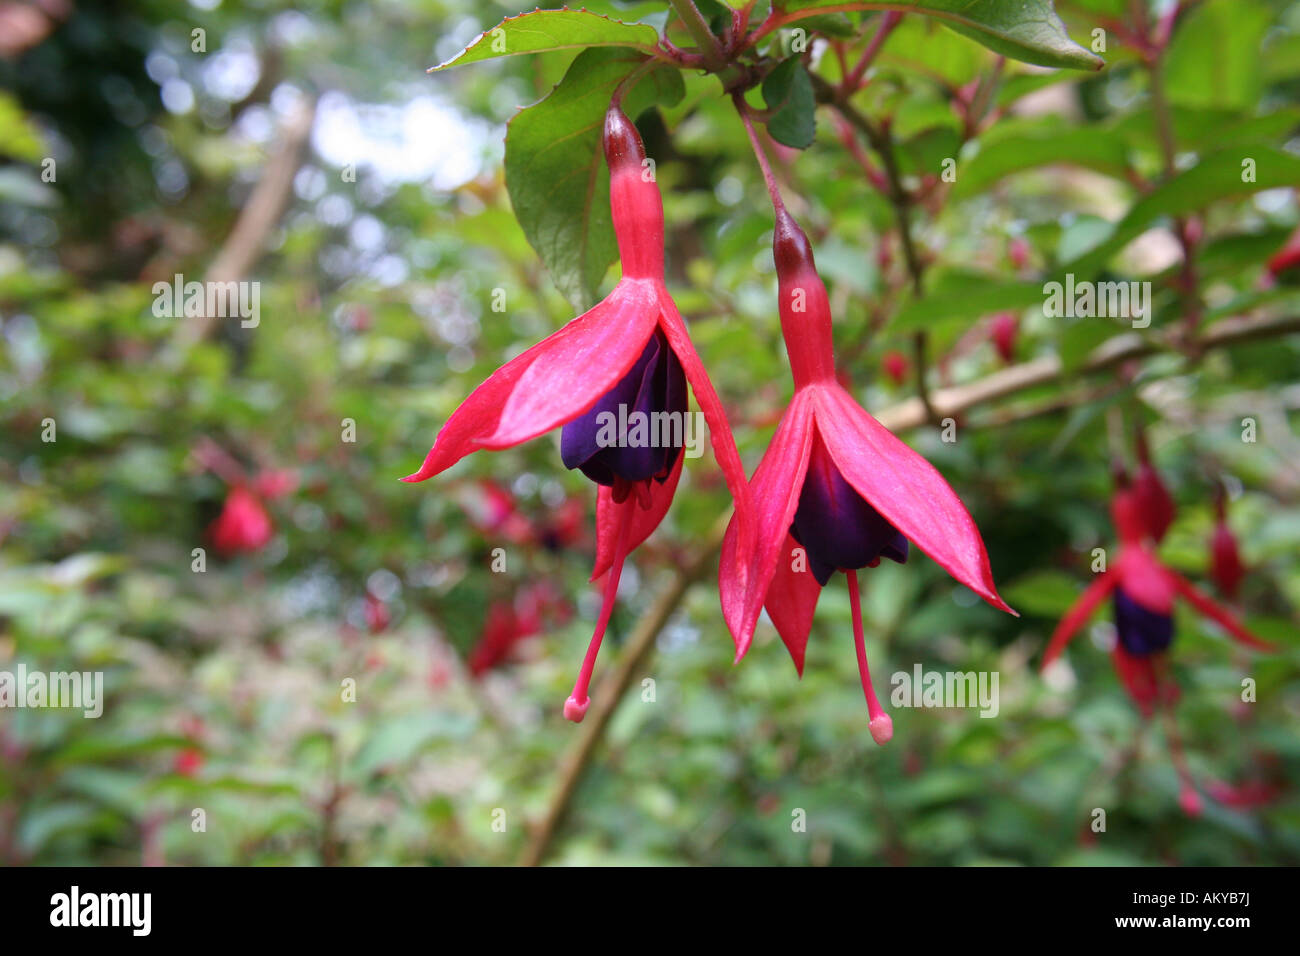 A red and purple bell shaped flower stock photo 15097349 alamy a red and purple bell shaped flower mightylinksfo